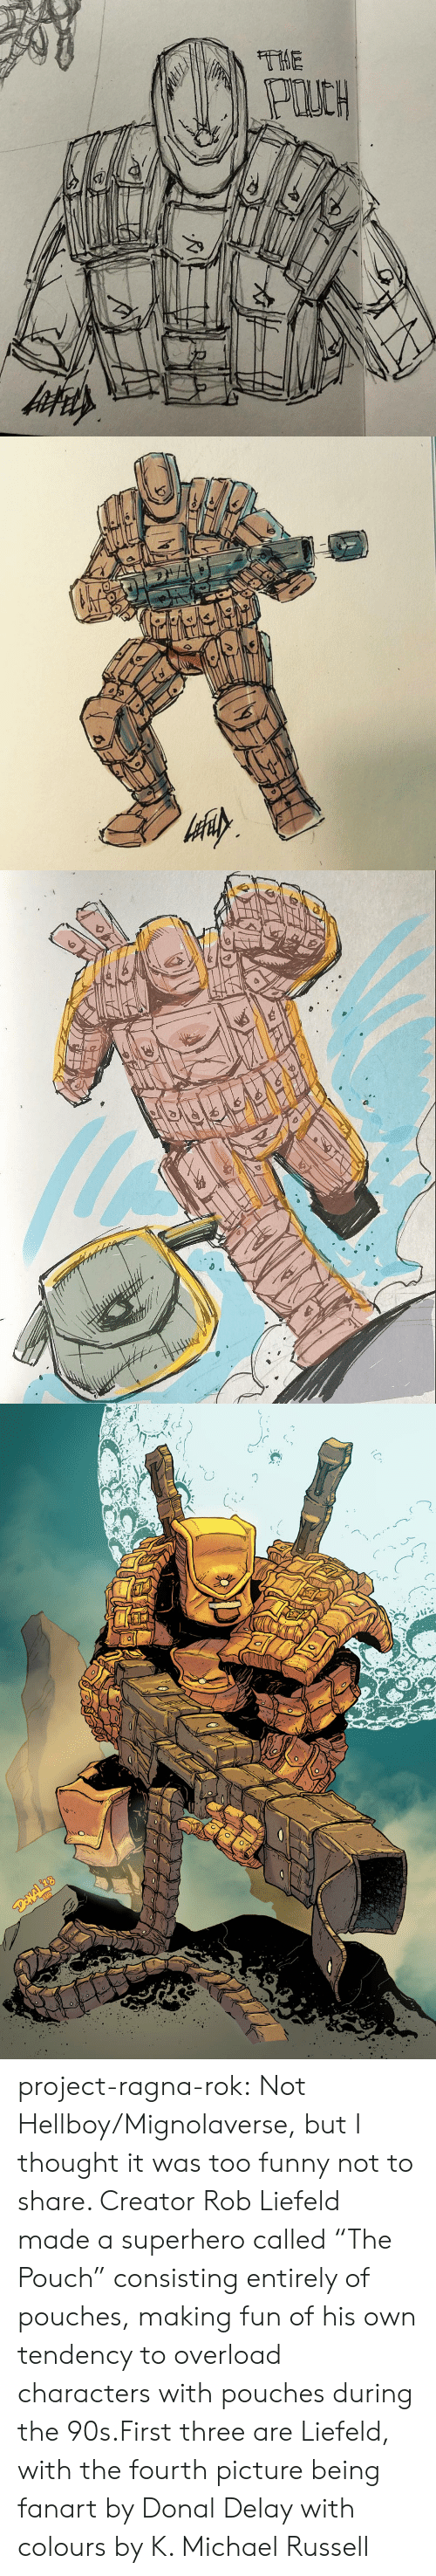 """tendency: project-ragna-rok:  Not Hellboy/Mignolaverse, but I thought it was too funny not to share. Creator Rob Liefeld made a superhero called """"The Pouch"""" consisting entirely of pouches, making fun of his own tendency to overload characters with pouches during the 90s.First three are Liefeld, with the fourth picture being fanart by Donal Delay with colours by K. Michael Russell"""